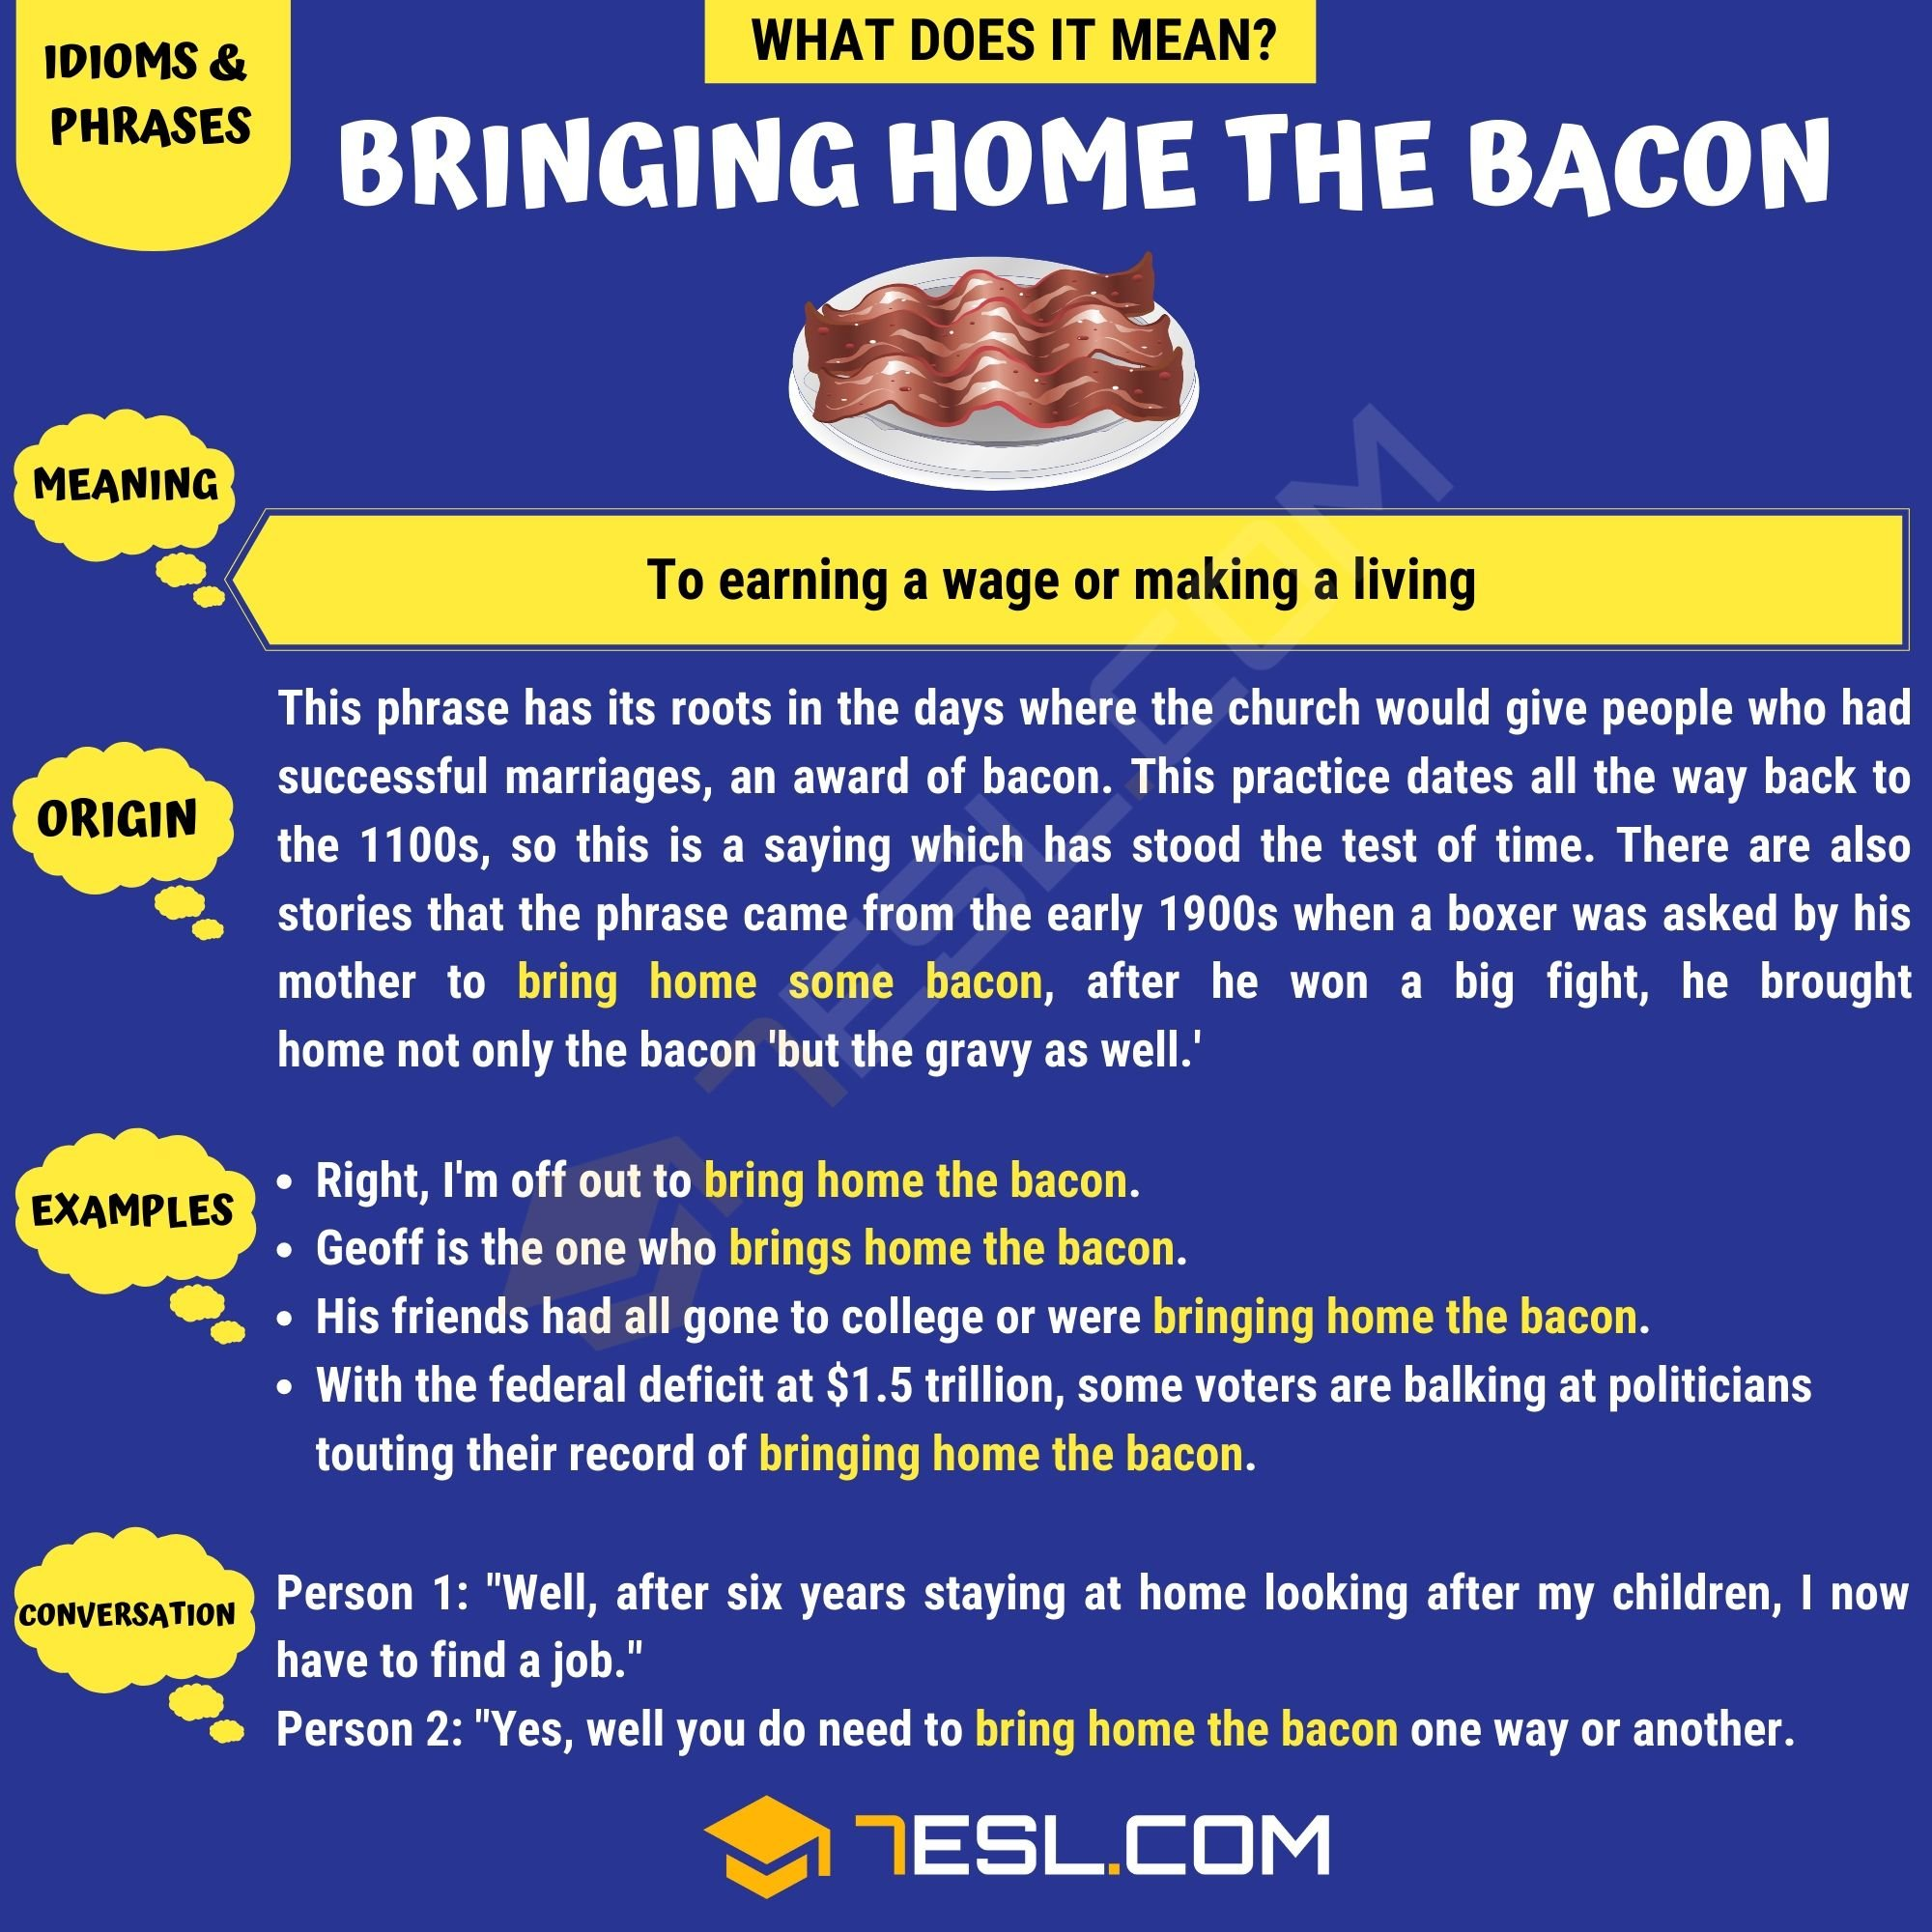 Bring Home the Bacon: the History of this Idiom and How It Can Be Used